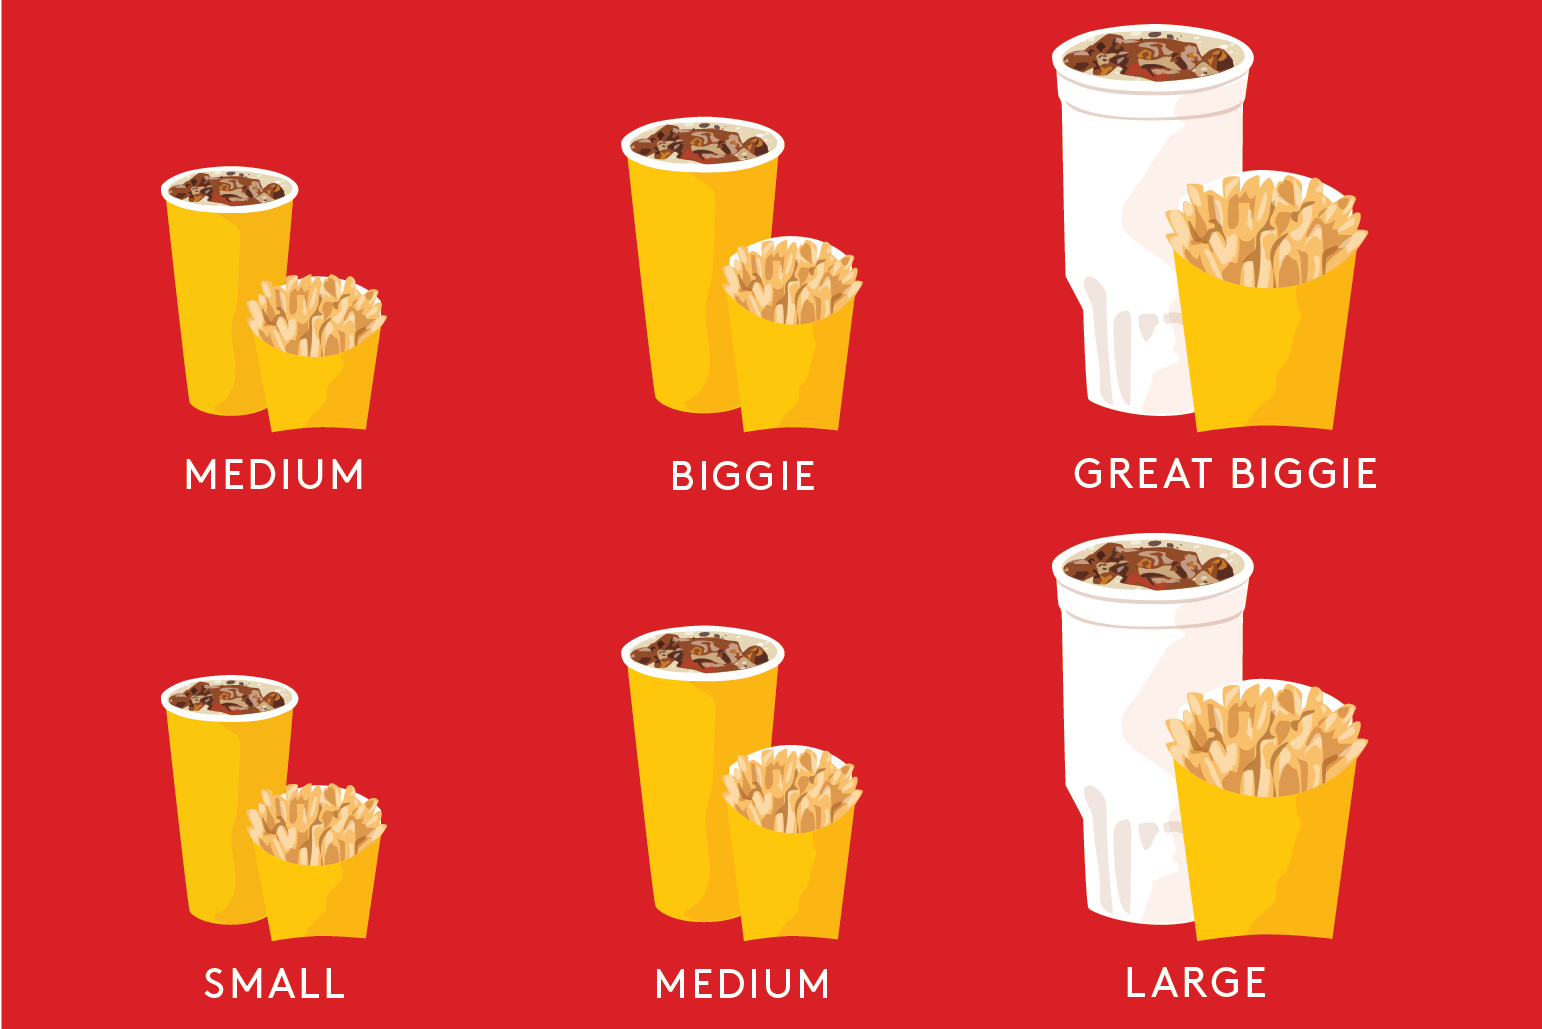 Fast Food Nutrition Facts Industry Since Super Size Me